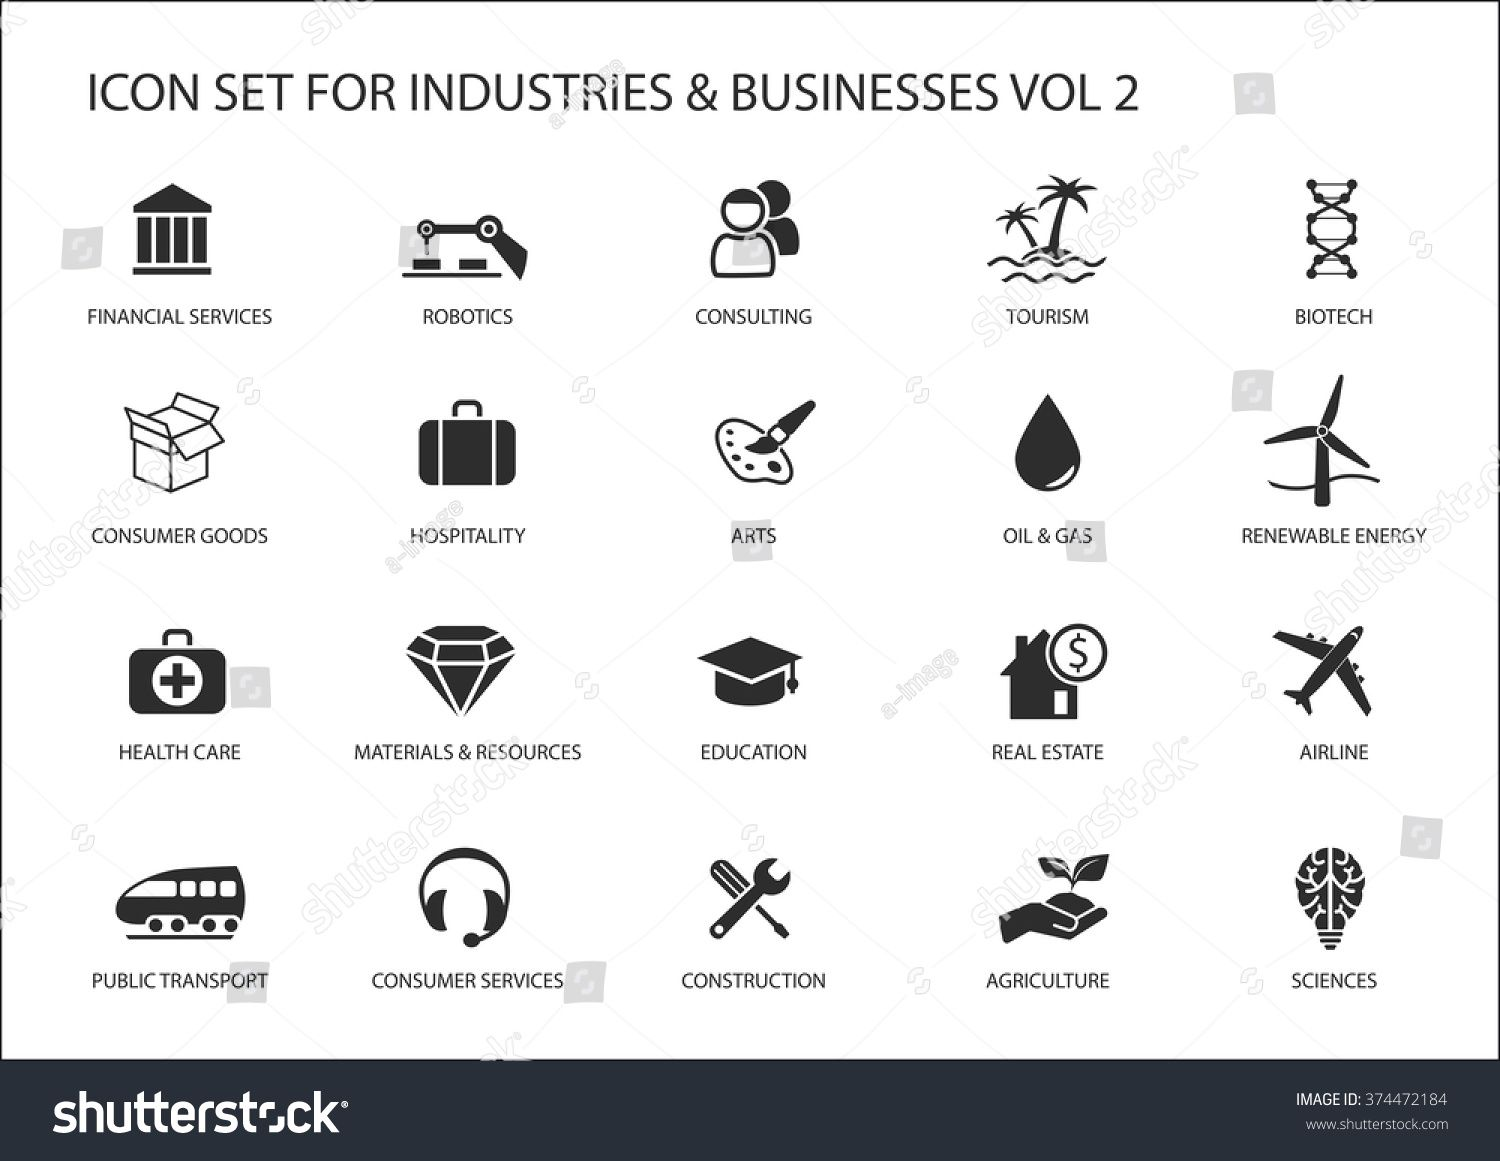 Business icons and symbols of various industries \u002F